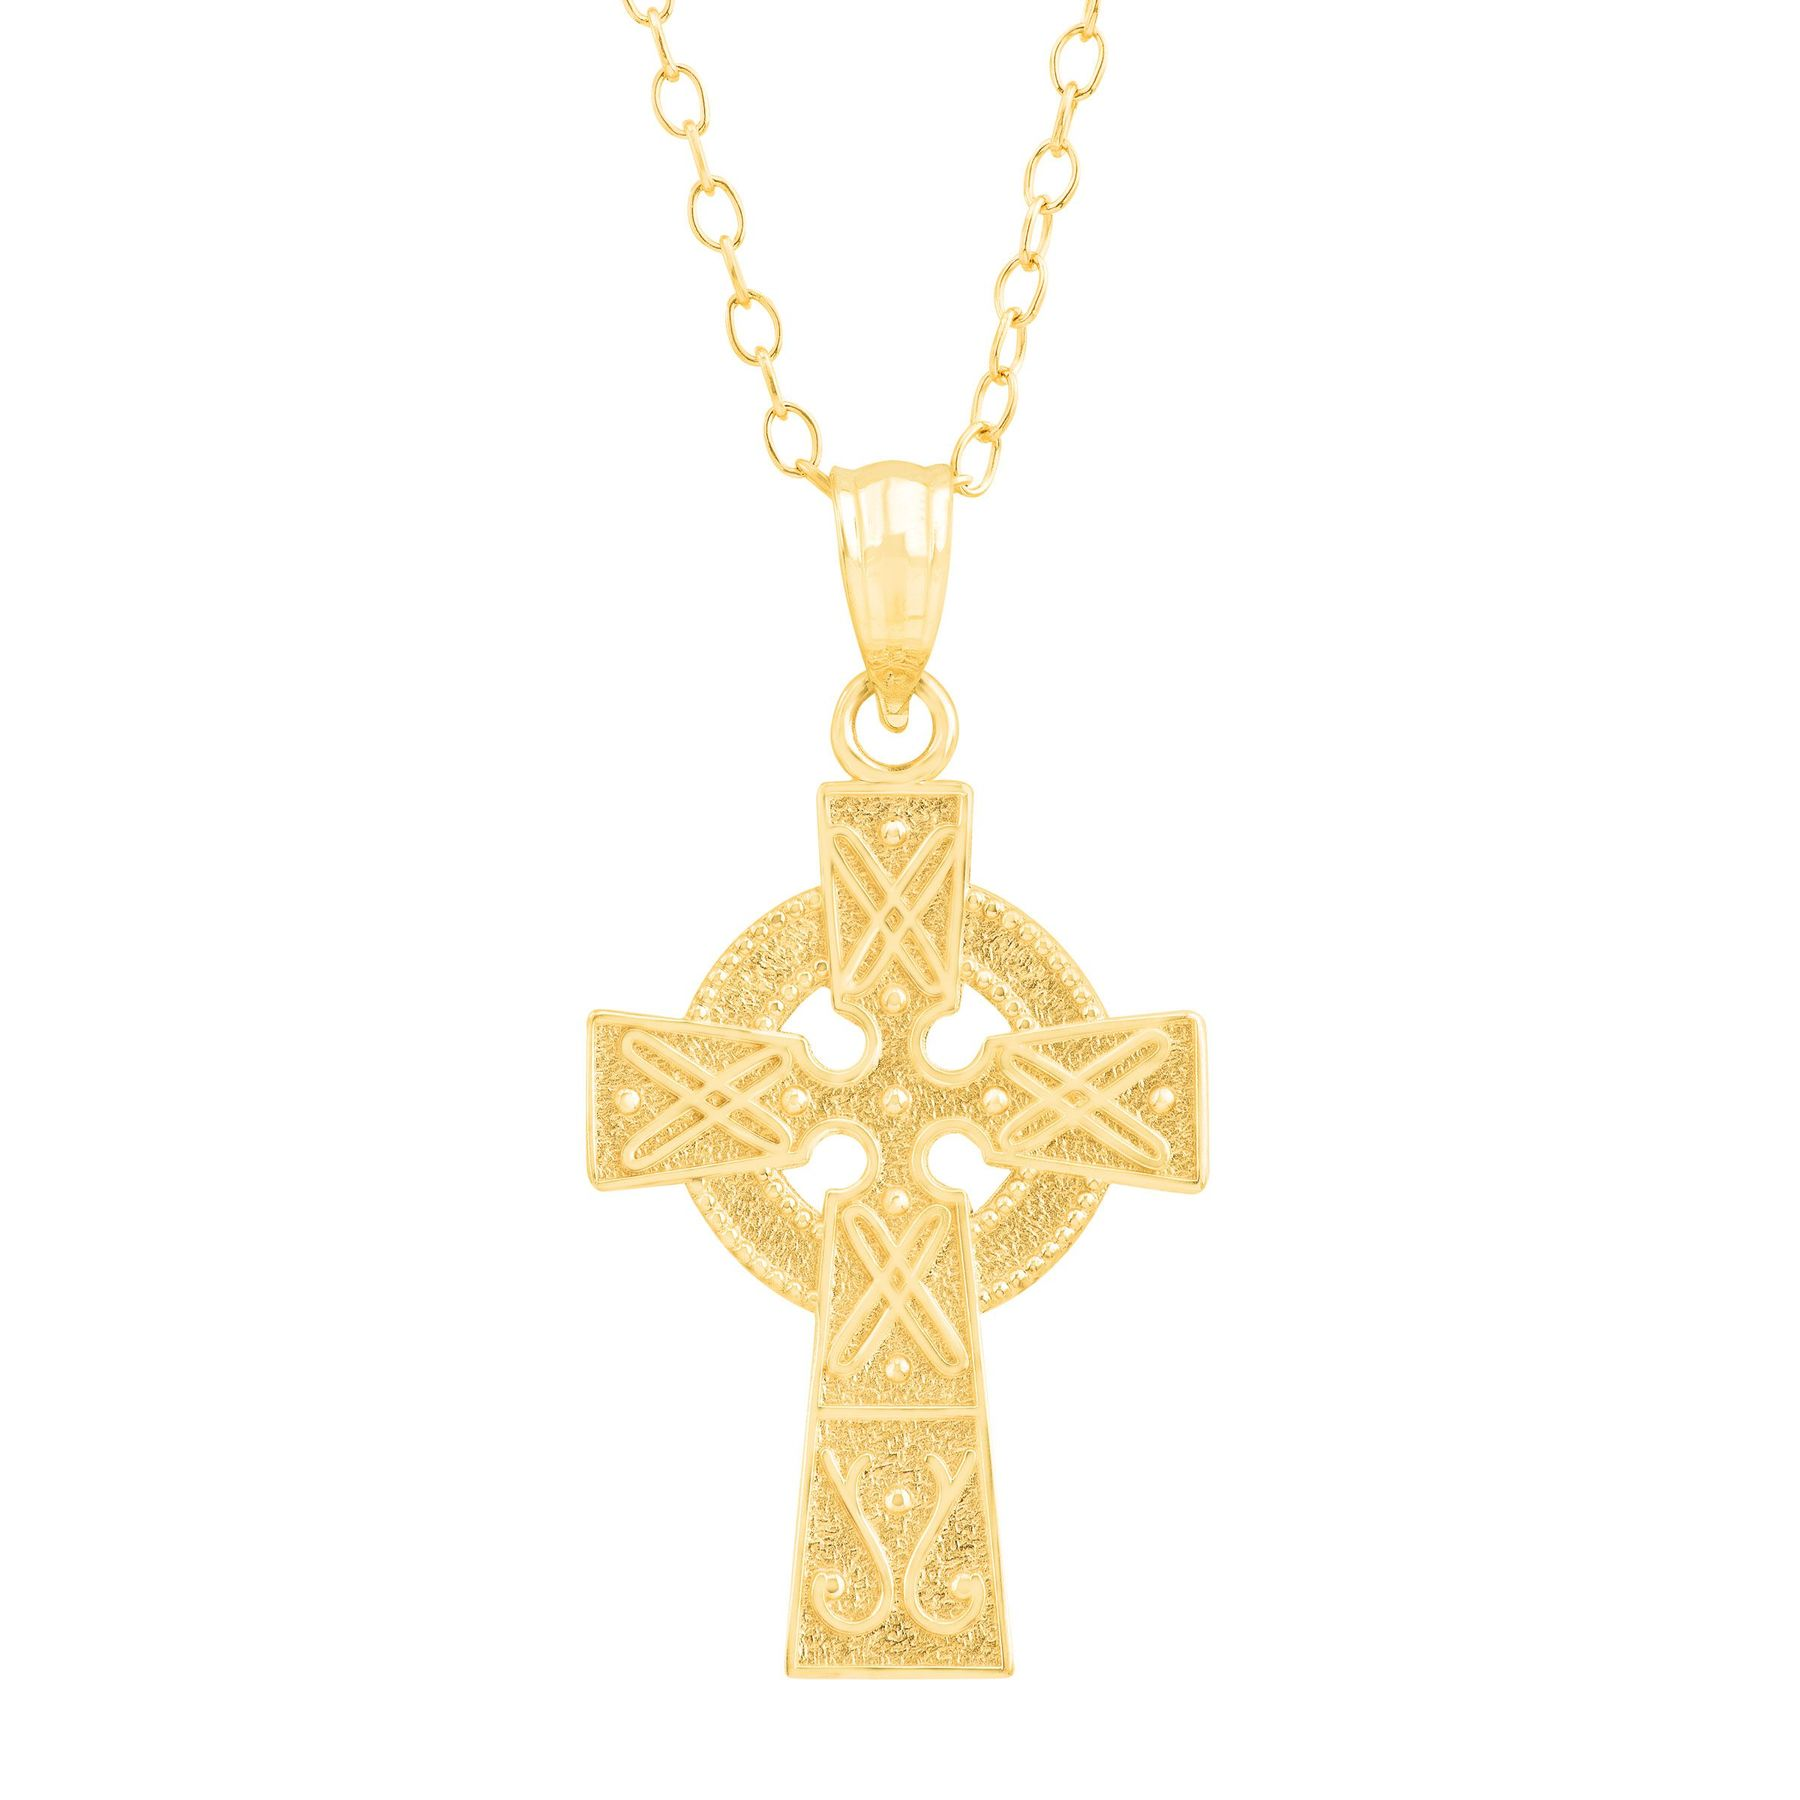 irish and rhodium cross wy gold make mens yellow coated pendant warrior crosses jewelry black necklace silver celtic background